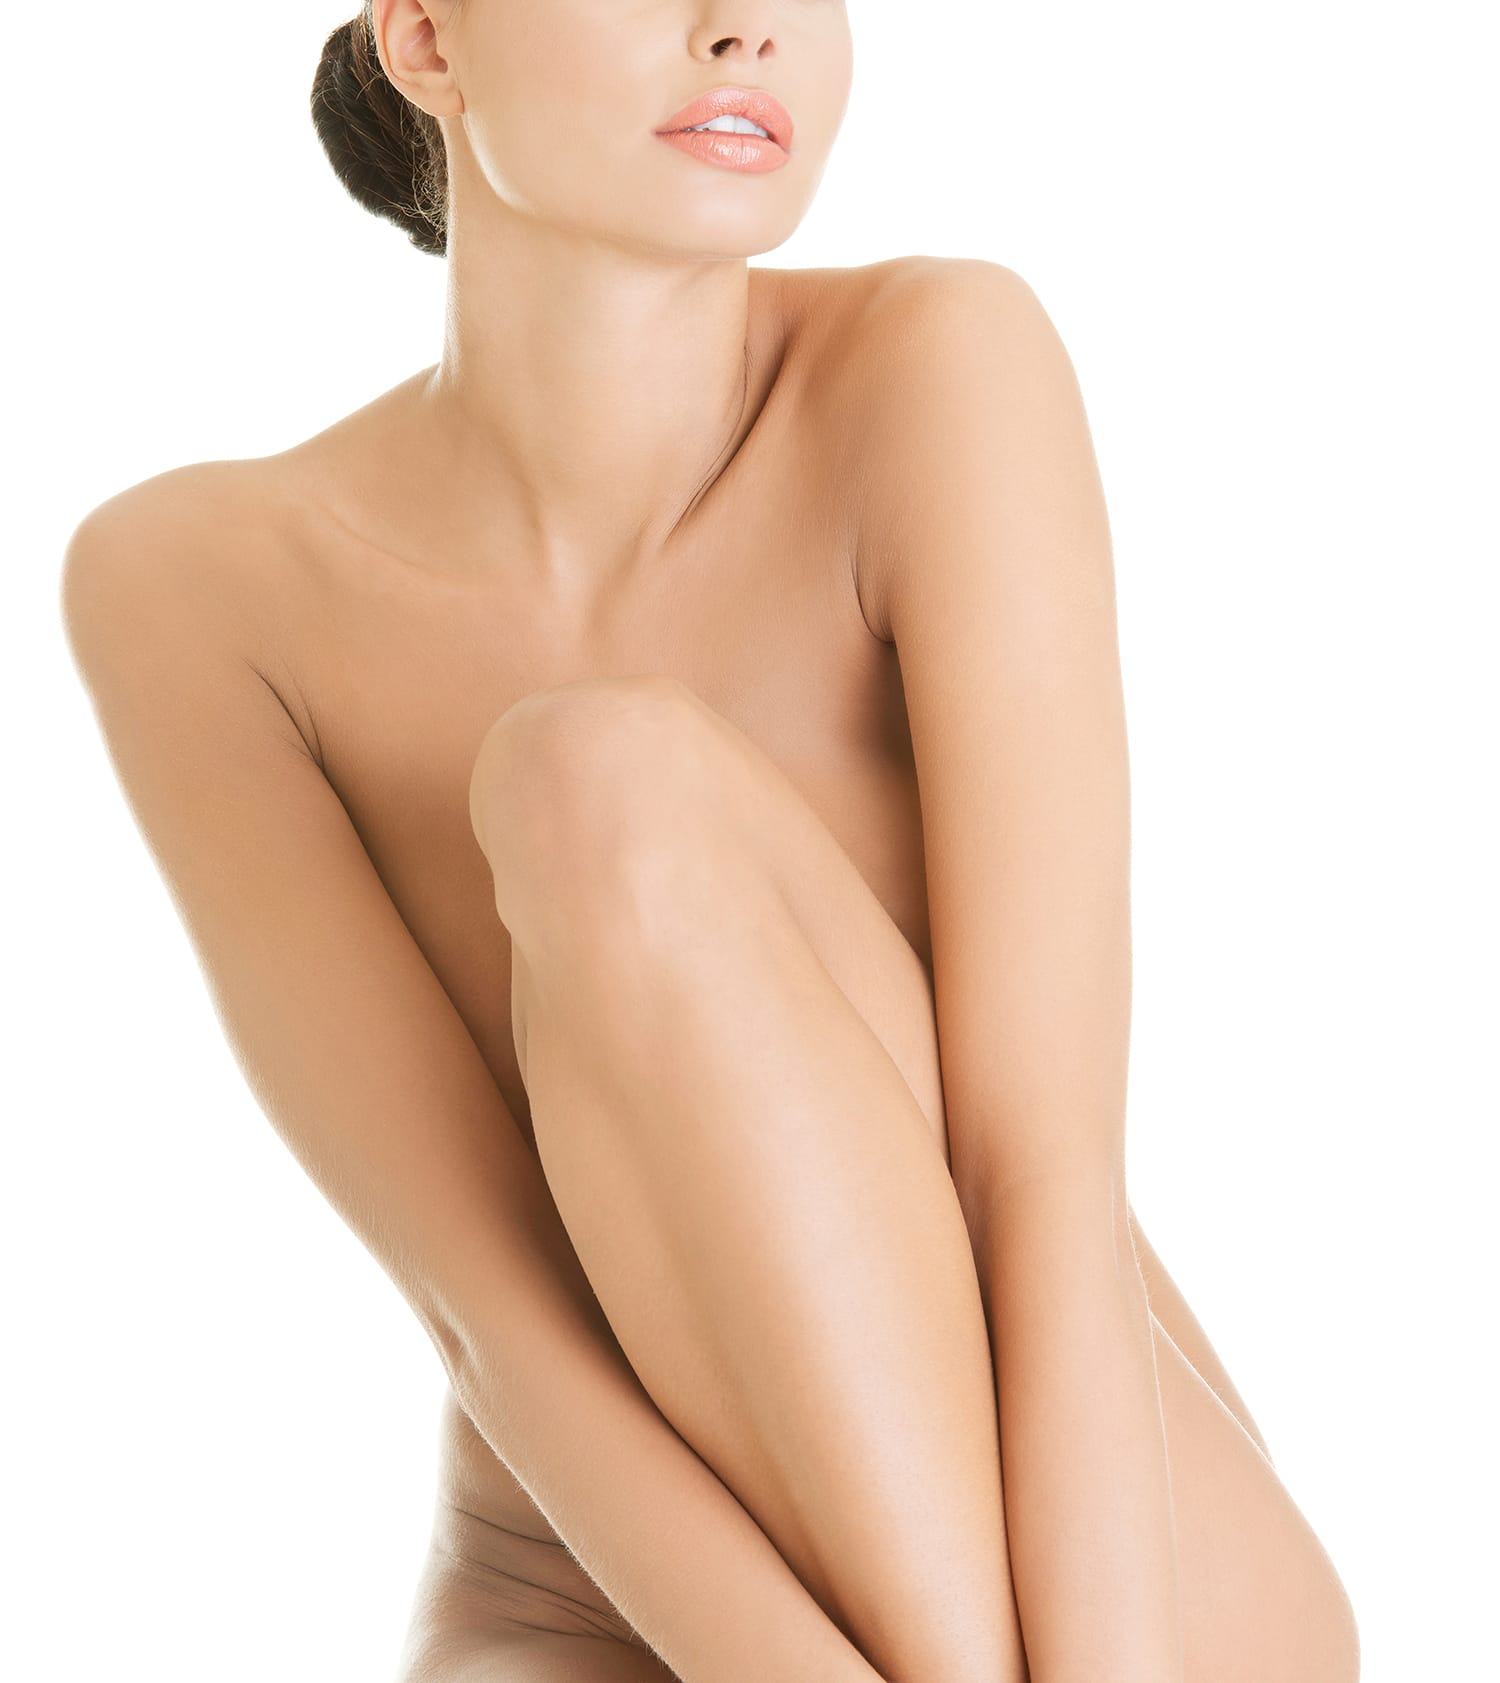 Newport Beach Plastic Surgery